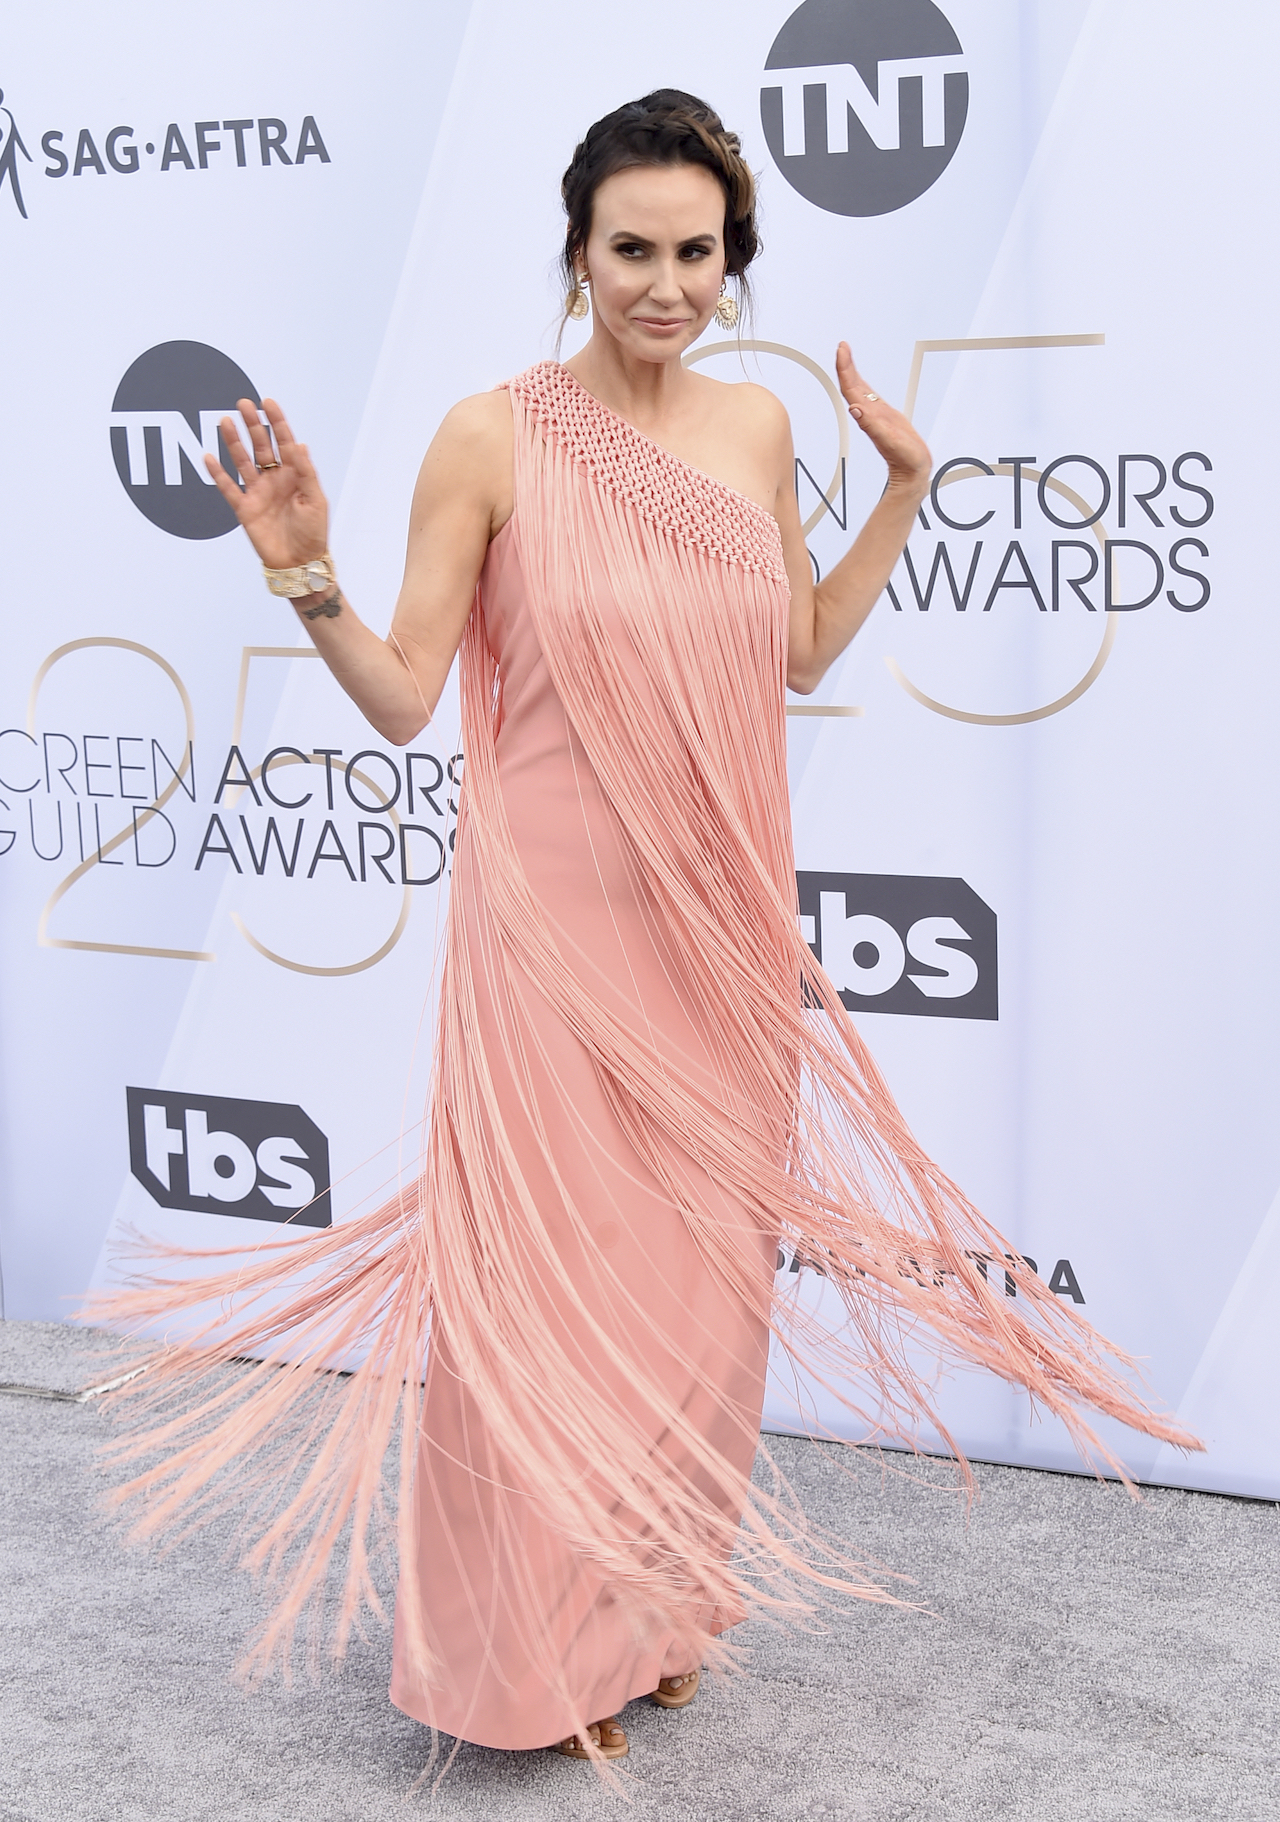 "<div class=""meta image-caption""><div class=""origin-logo origin-image ap""><span>AP</span></div><span class=""caption-text"">Keltie Knight arrives at the 25th annual Screen Actors Guild Awards at the Shrine Auditorium & Expo Hall on Sunday, Jan. 27, 2019, in Los Angeles. (Jordan Strauss/Invision/AP)</span></div>"